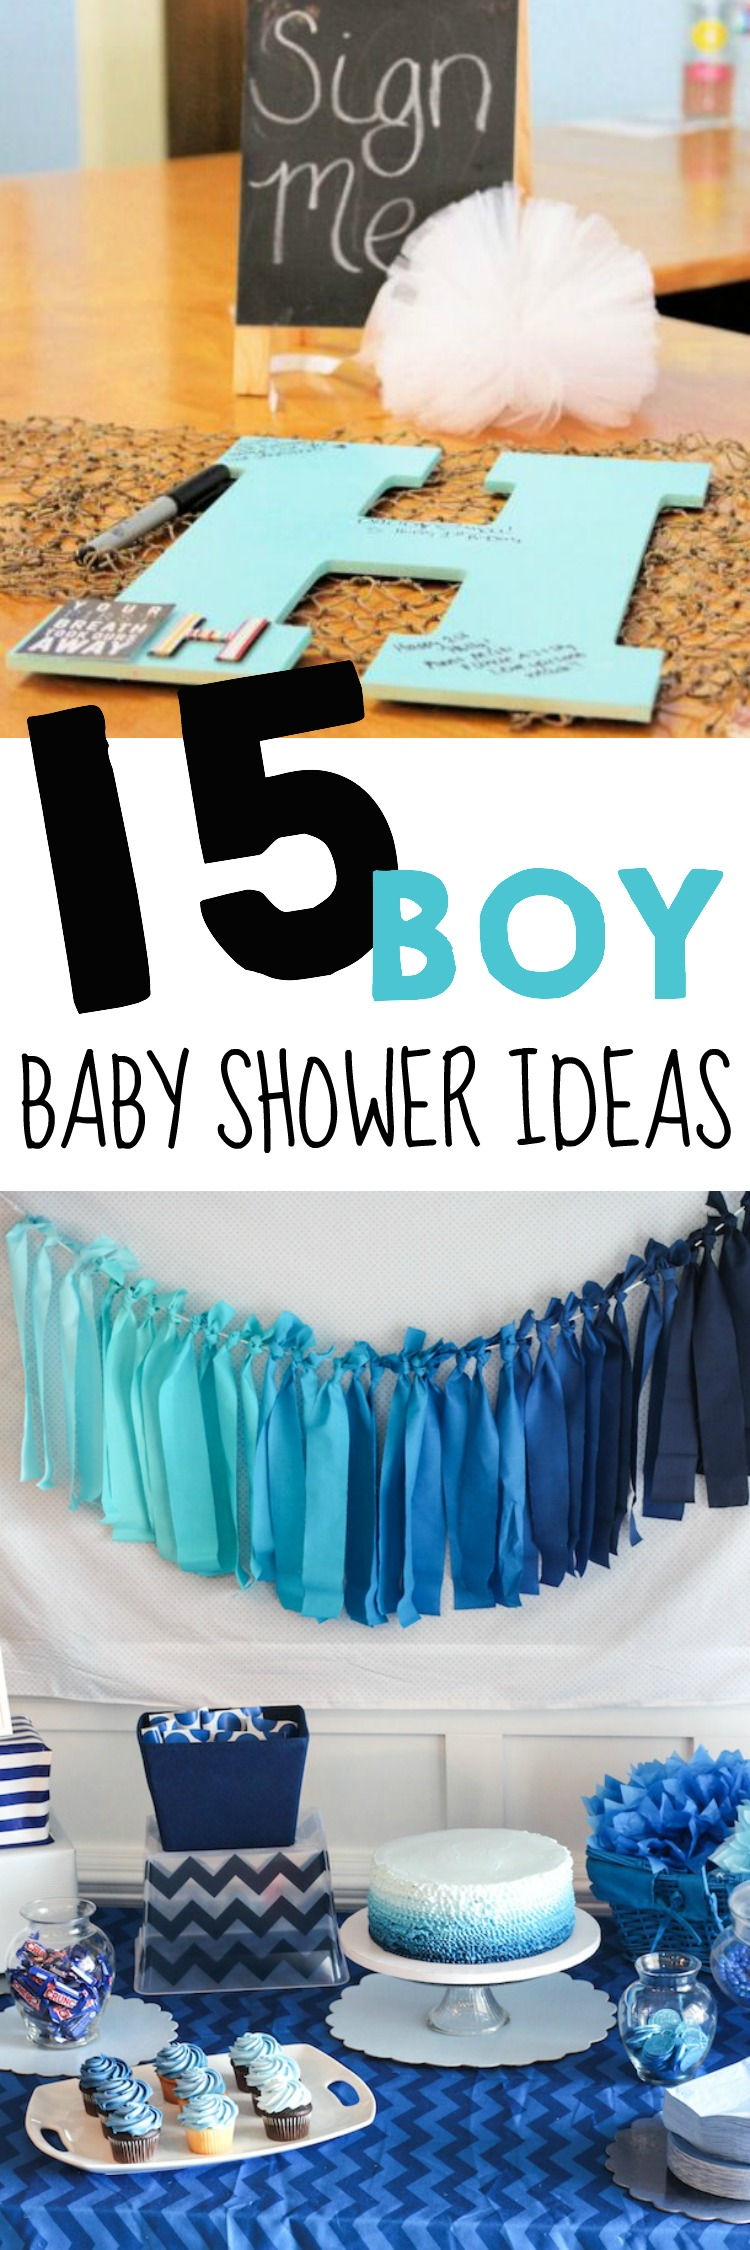 Baby Shower Picture Ideas : shower, picture, ideas, Shower, Ideas, Realistic